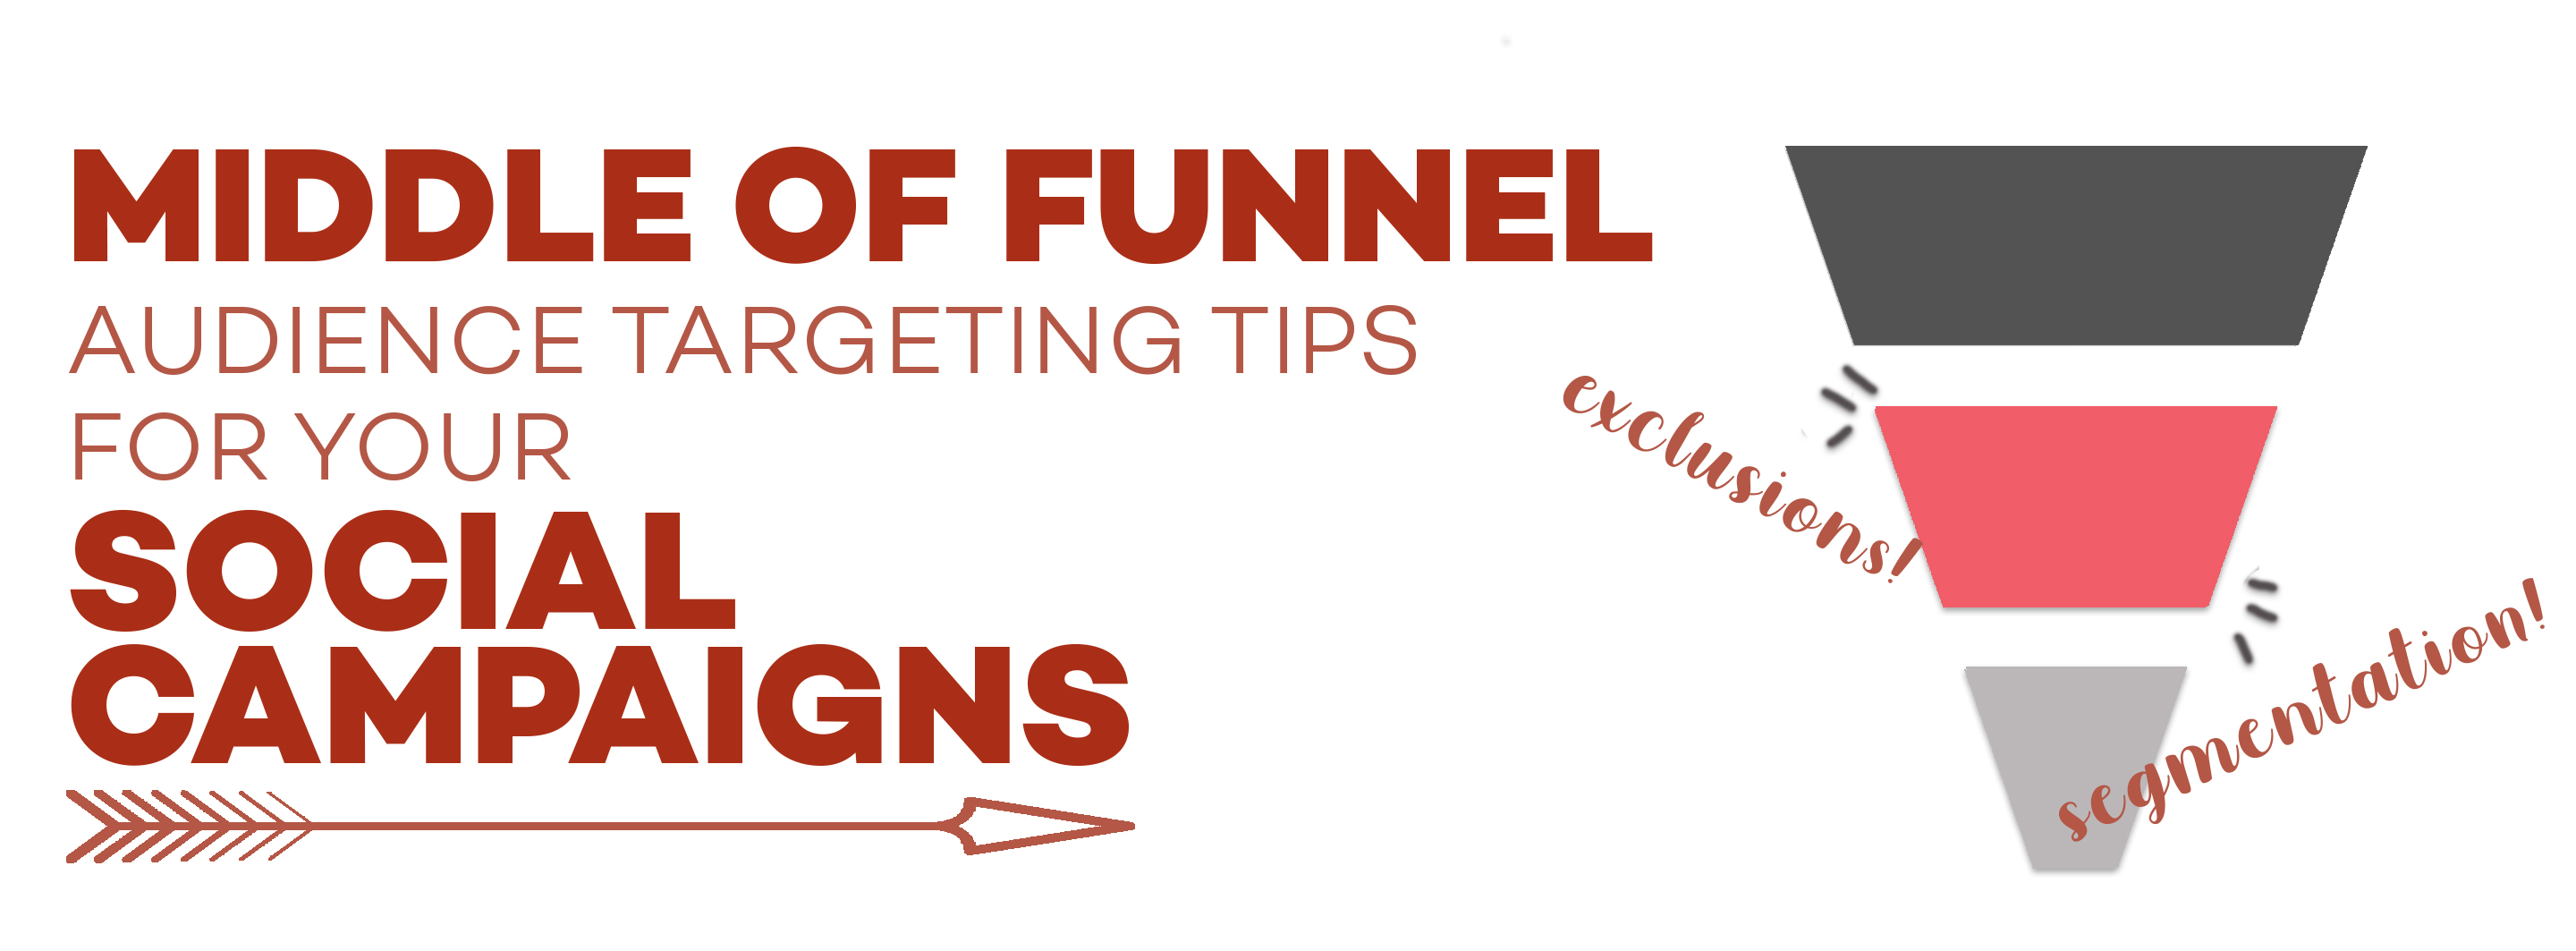 Middle of funnel social tips